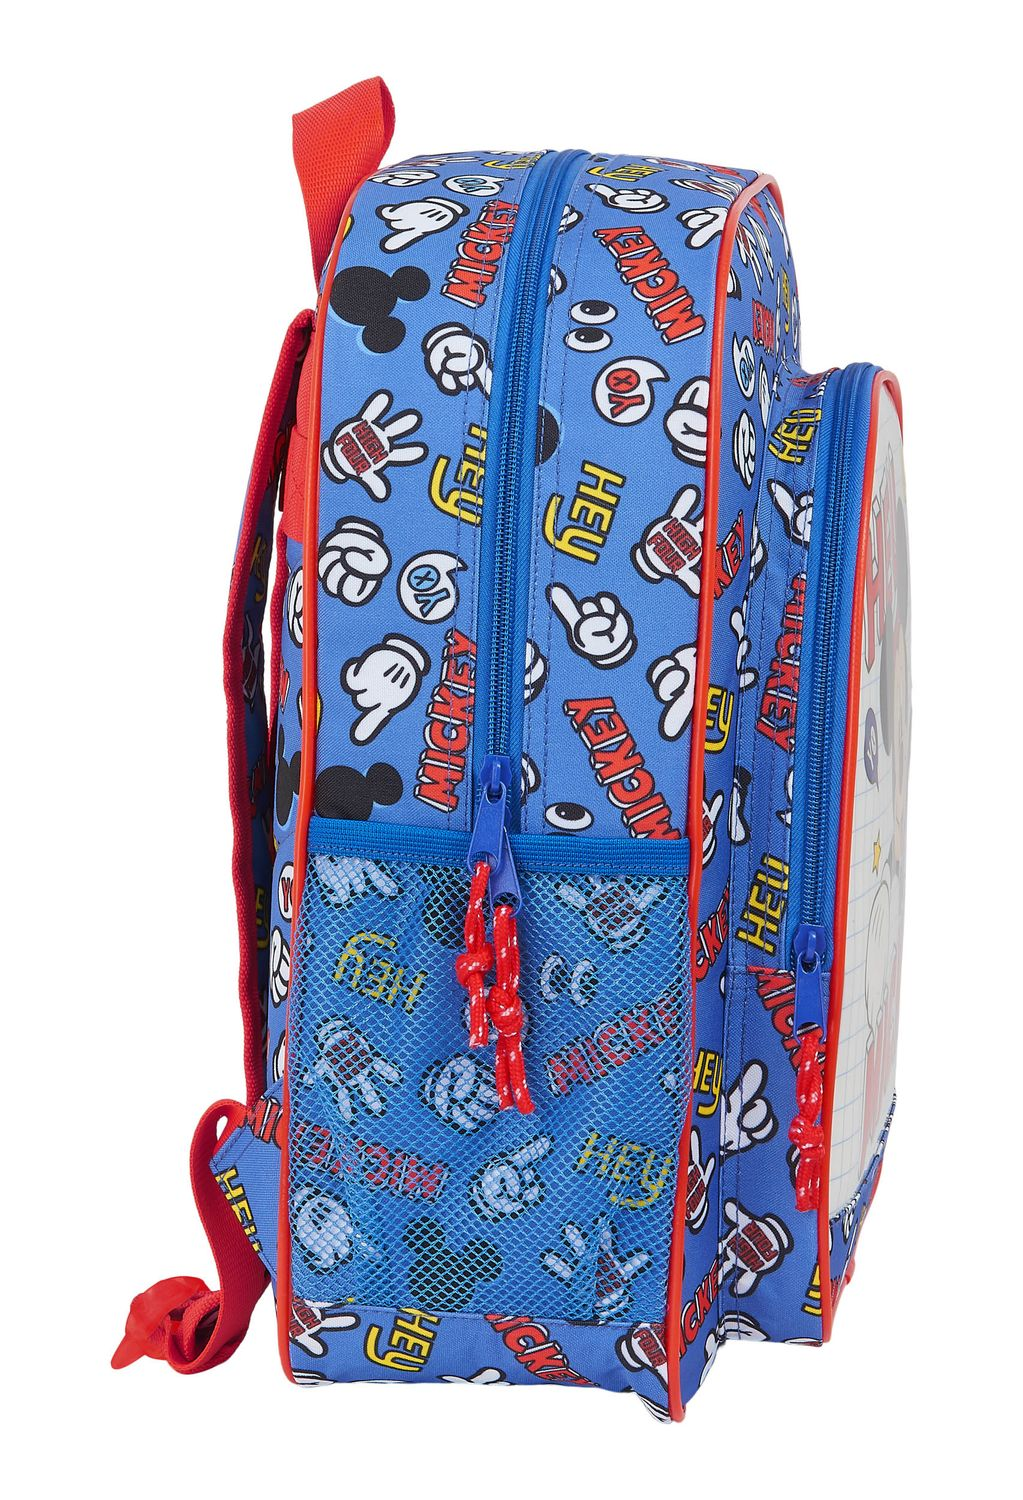 Disney MICKEY MOUSE THINGS Junior Rucksack 38 cm – image 3